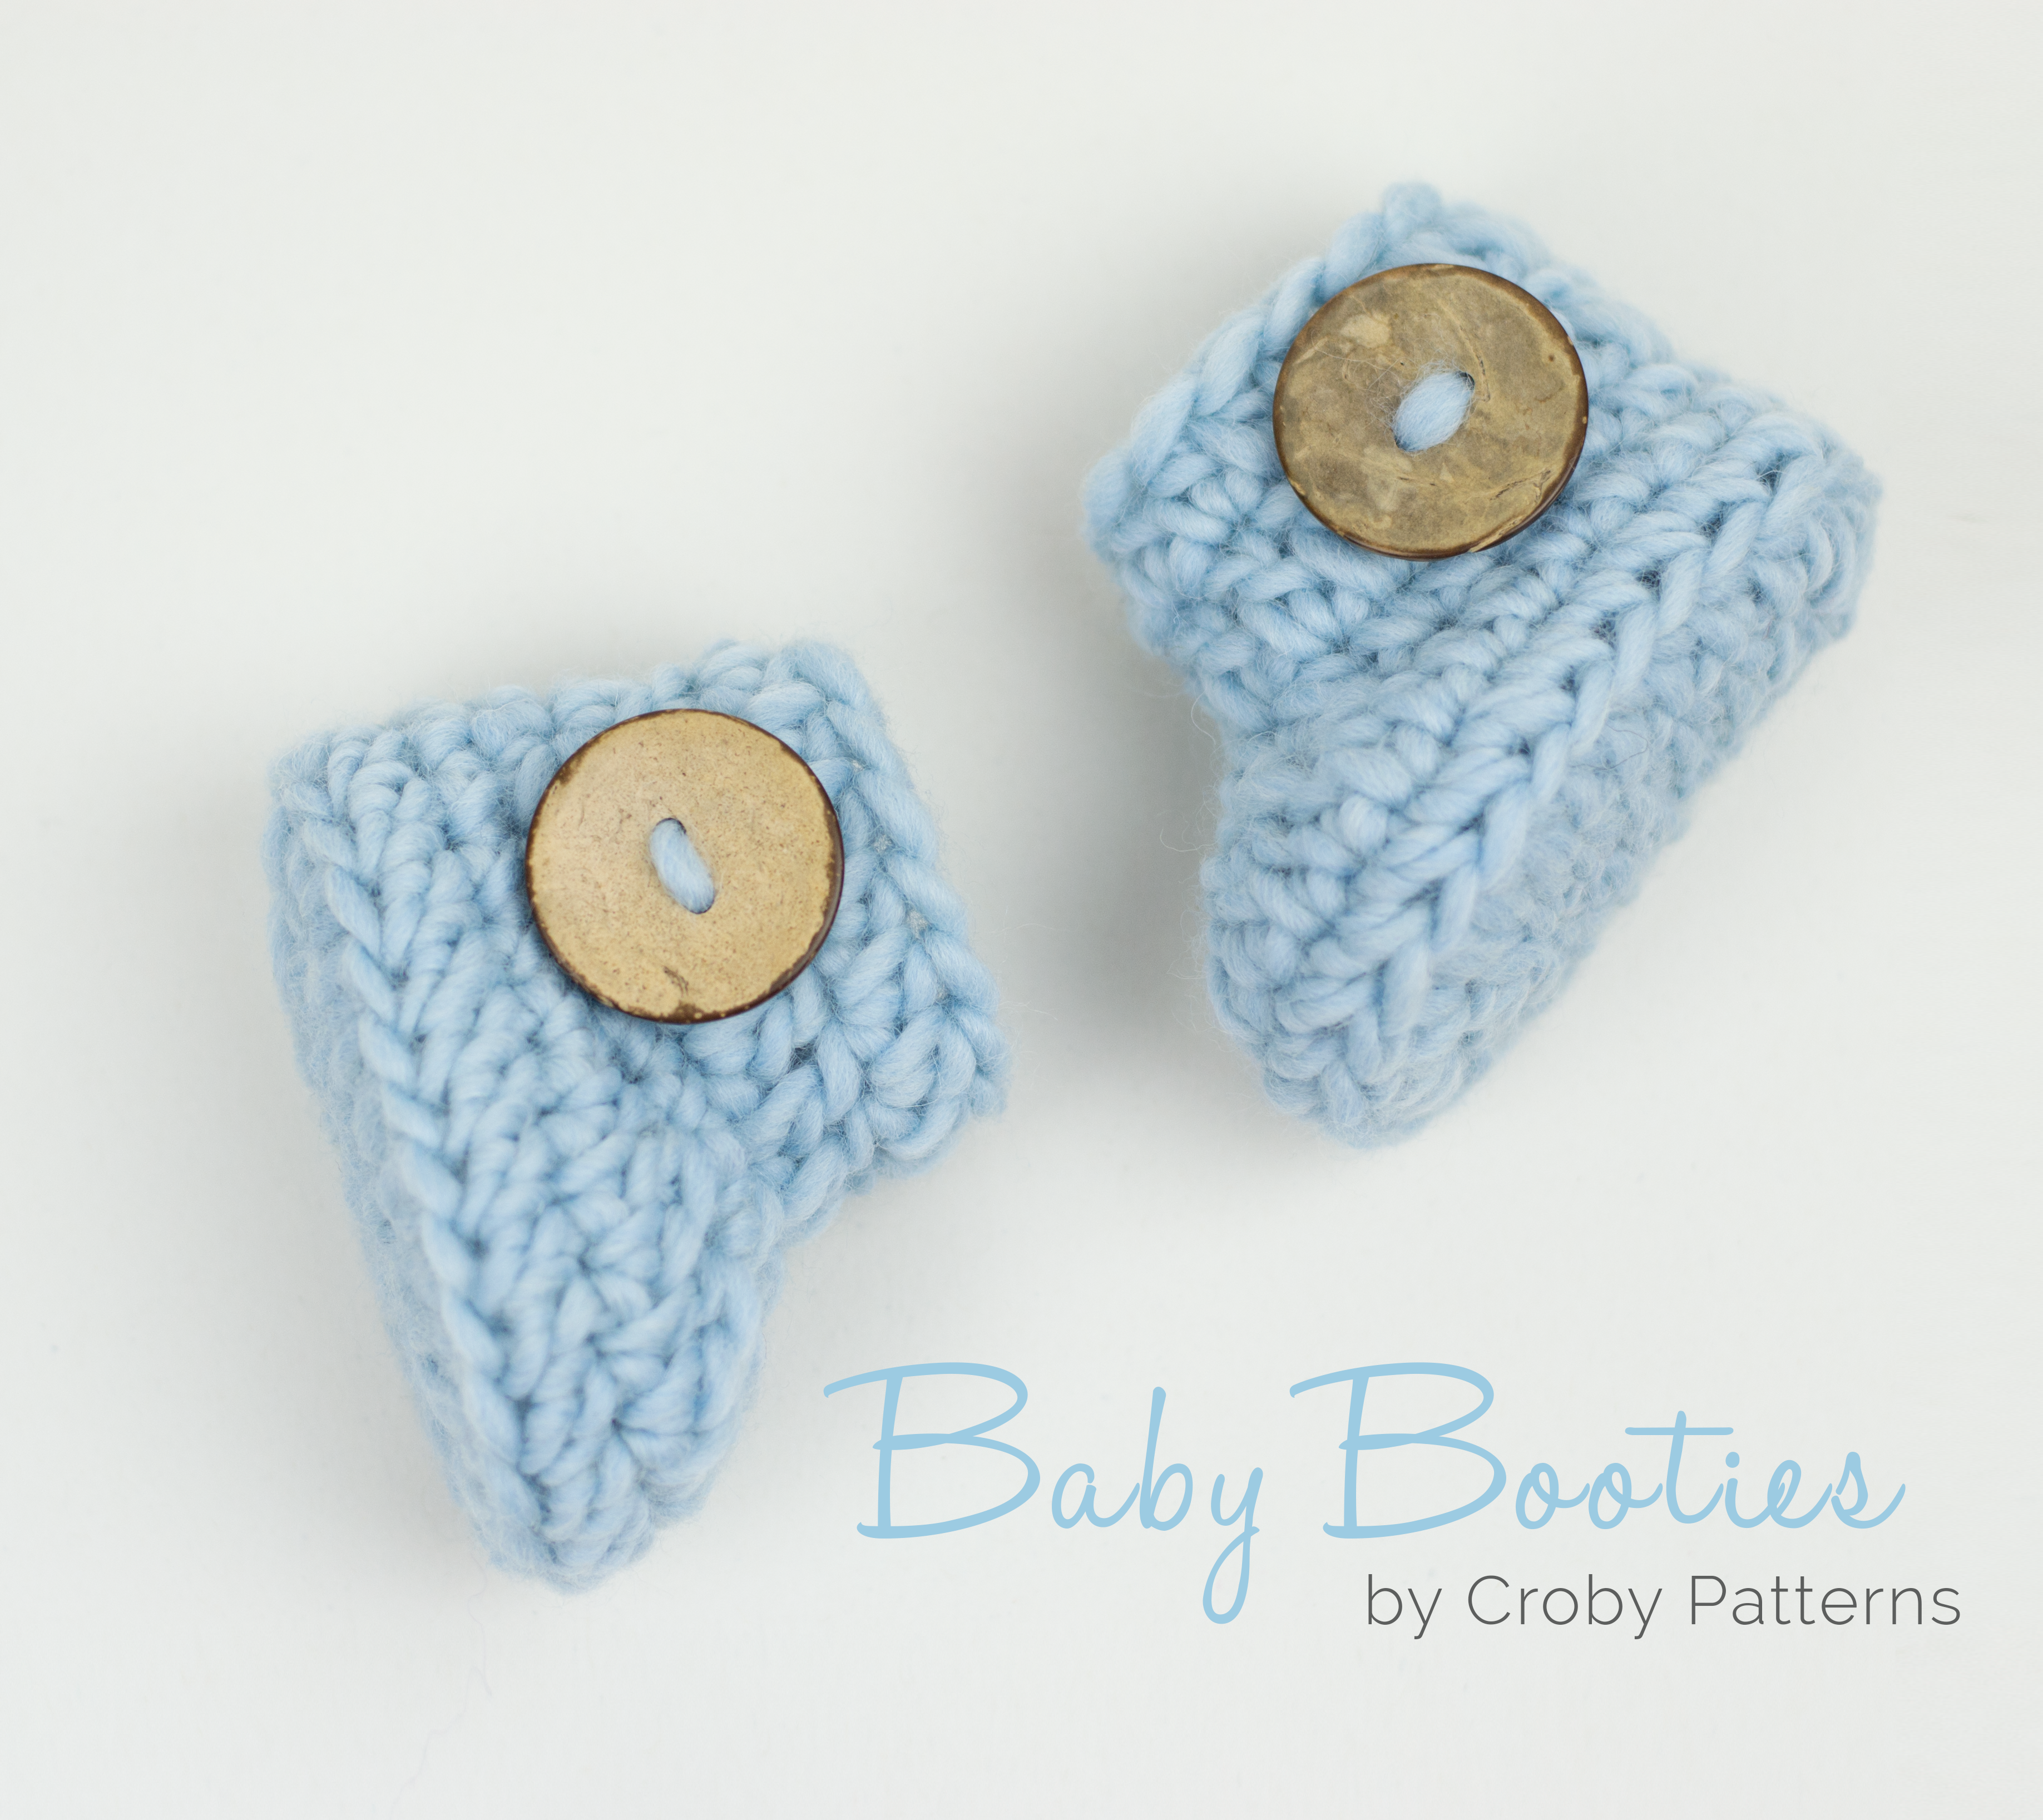 Croby Patterns | Crochet baby booties in 15 minutes or less ...